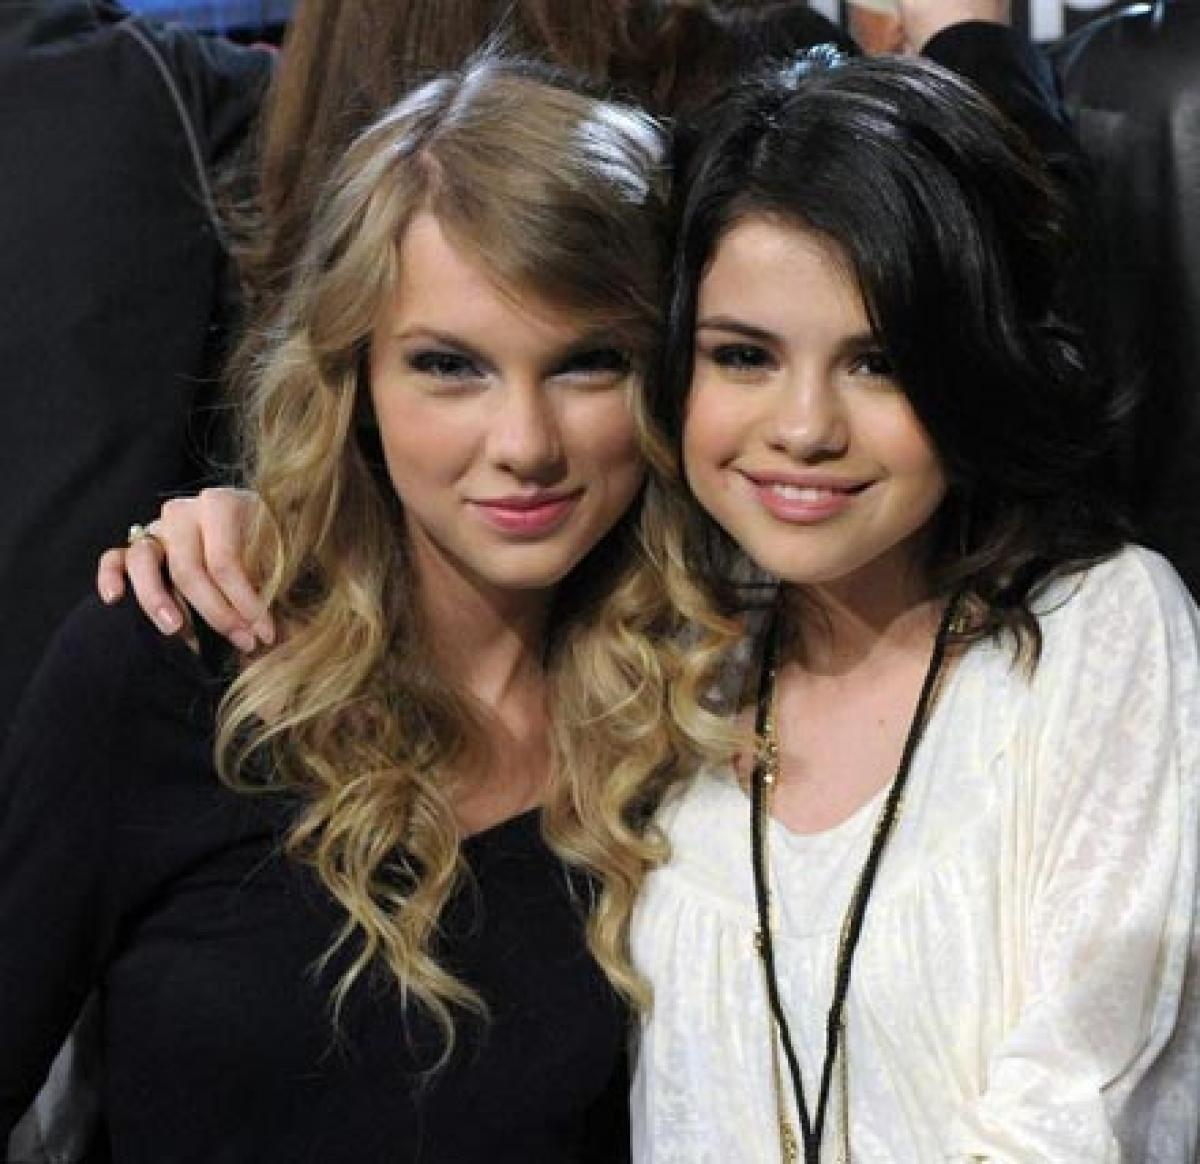 Taylor Swift cant imagine life without Selena Gomez